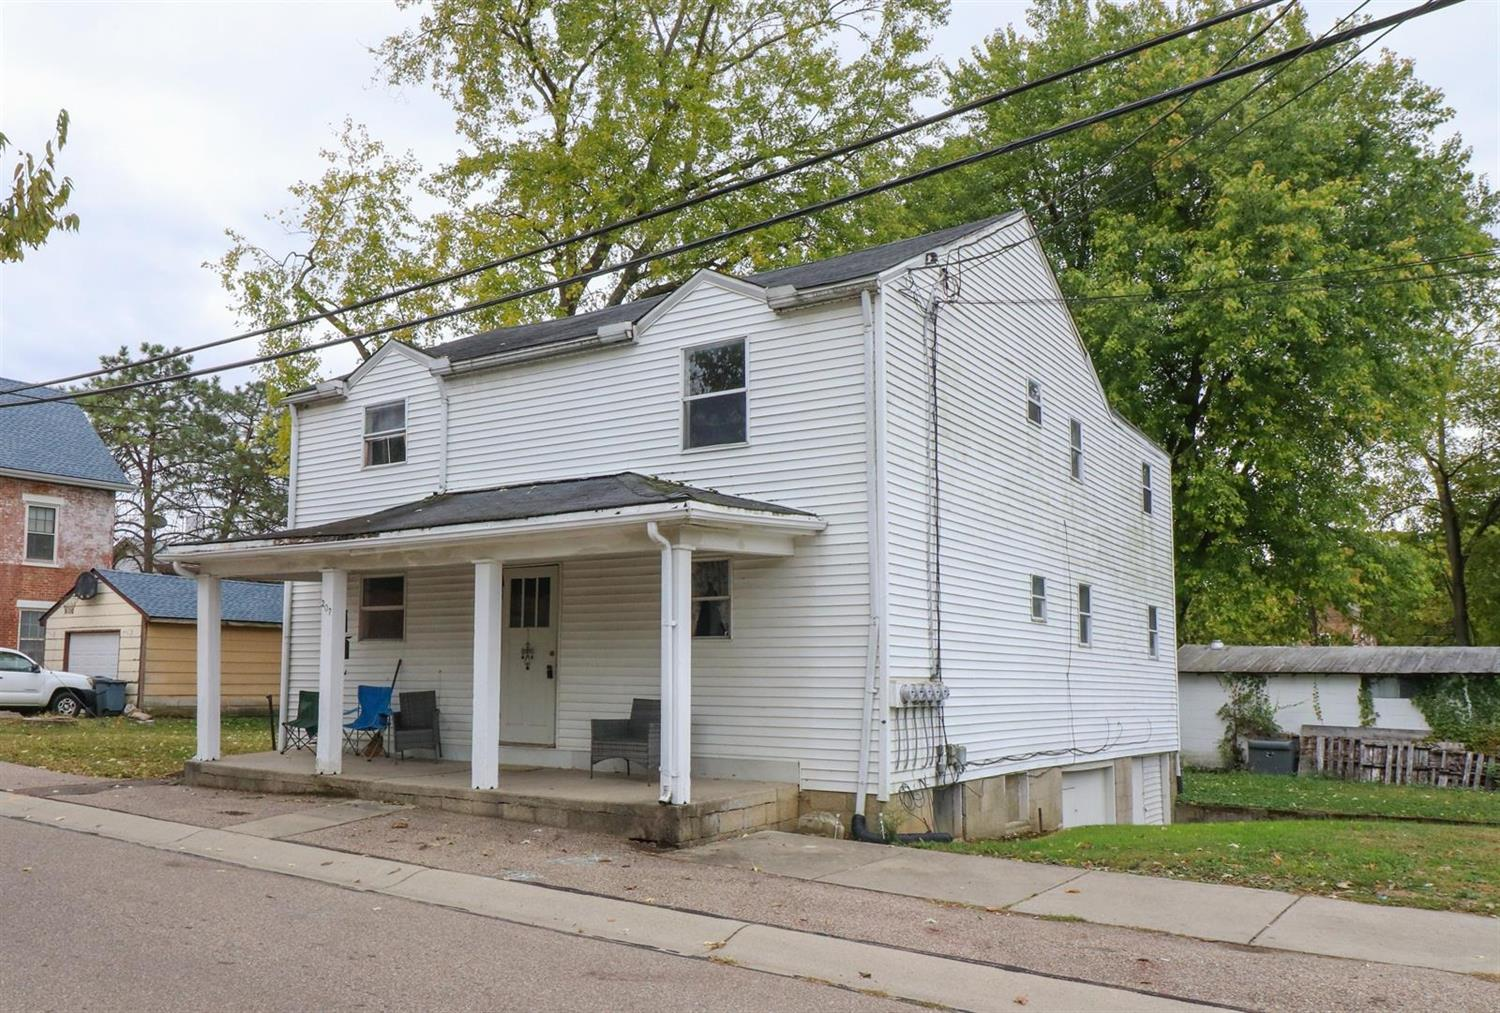 Property for sale at 207 N Walnut Street, Harrison,  Ohio 45030